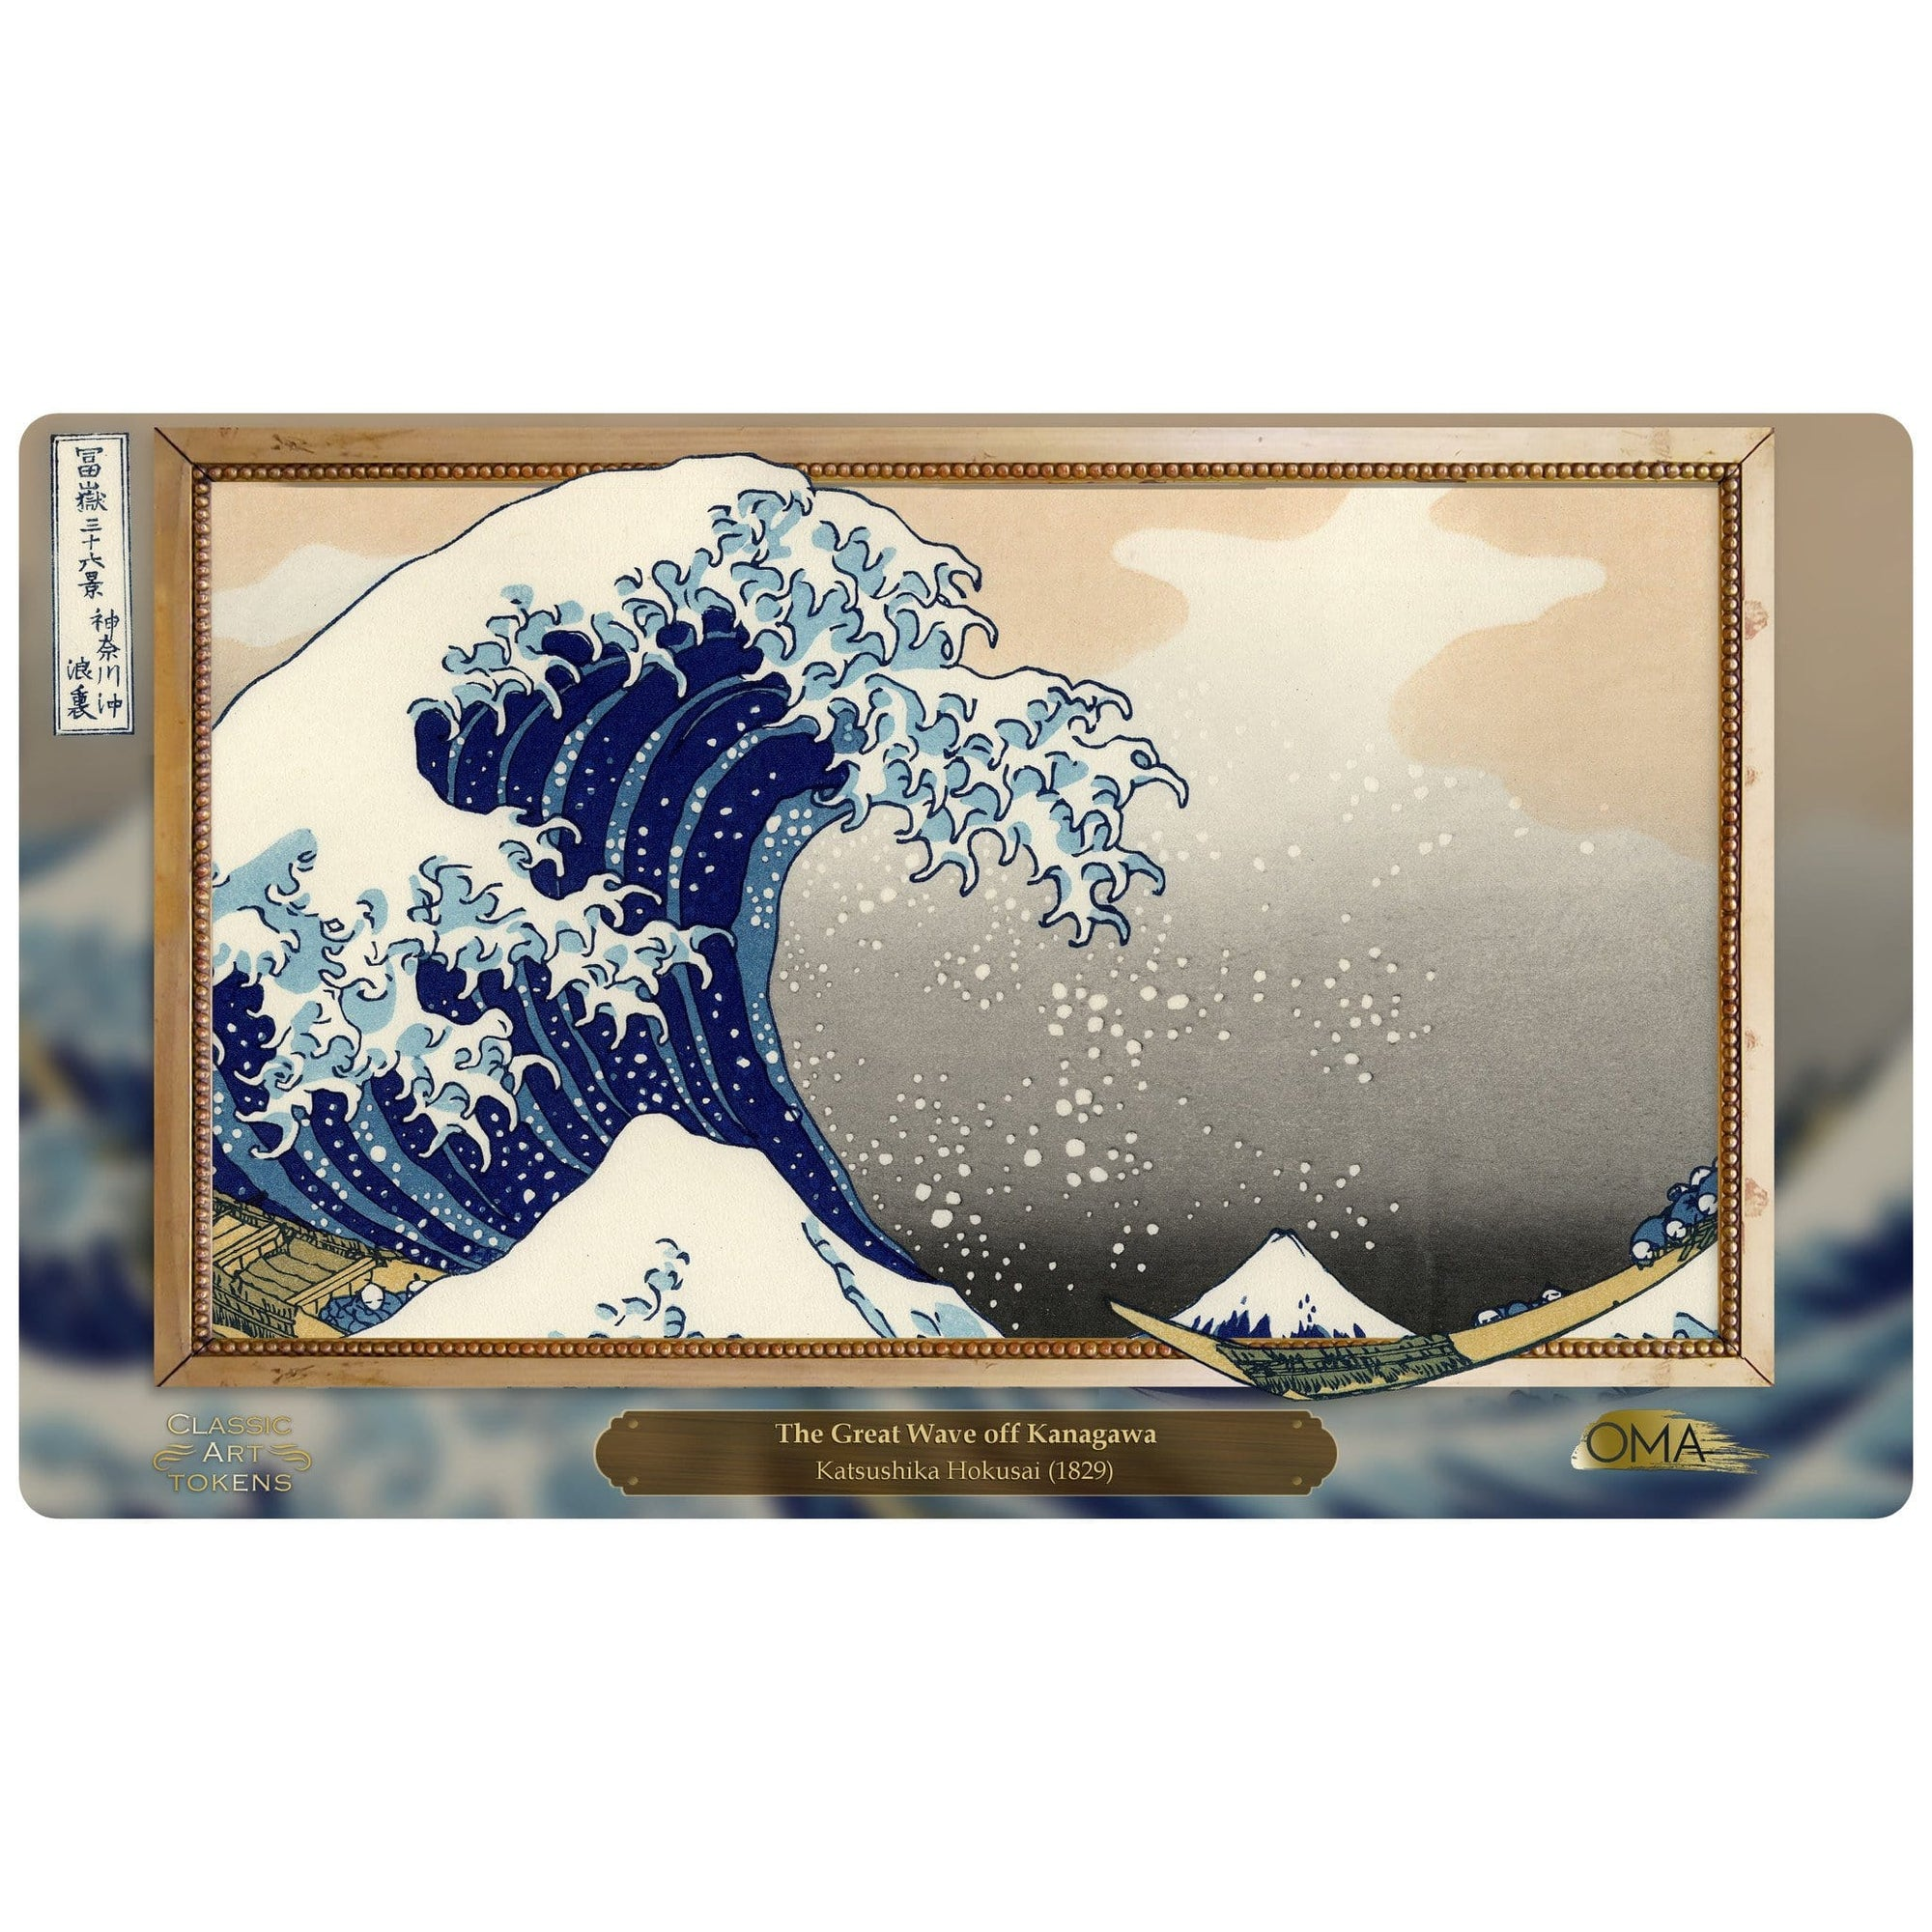 b93b0f20db629 Elemental Playmat by Katsushika Hokusai - Playmat - Original Magic Art -  Accessories for Magic the